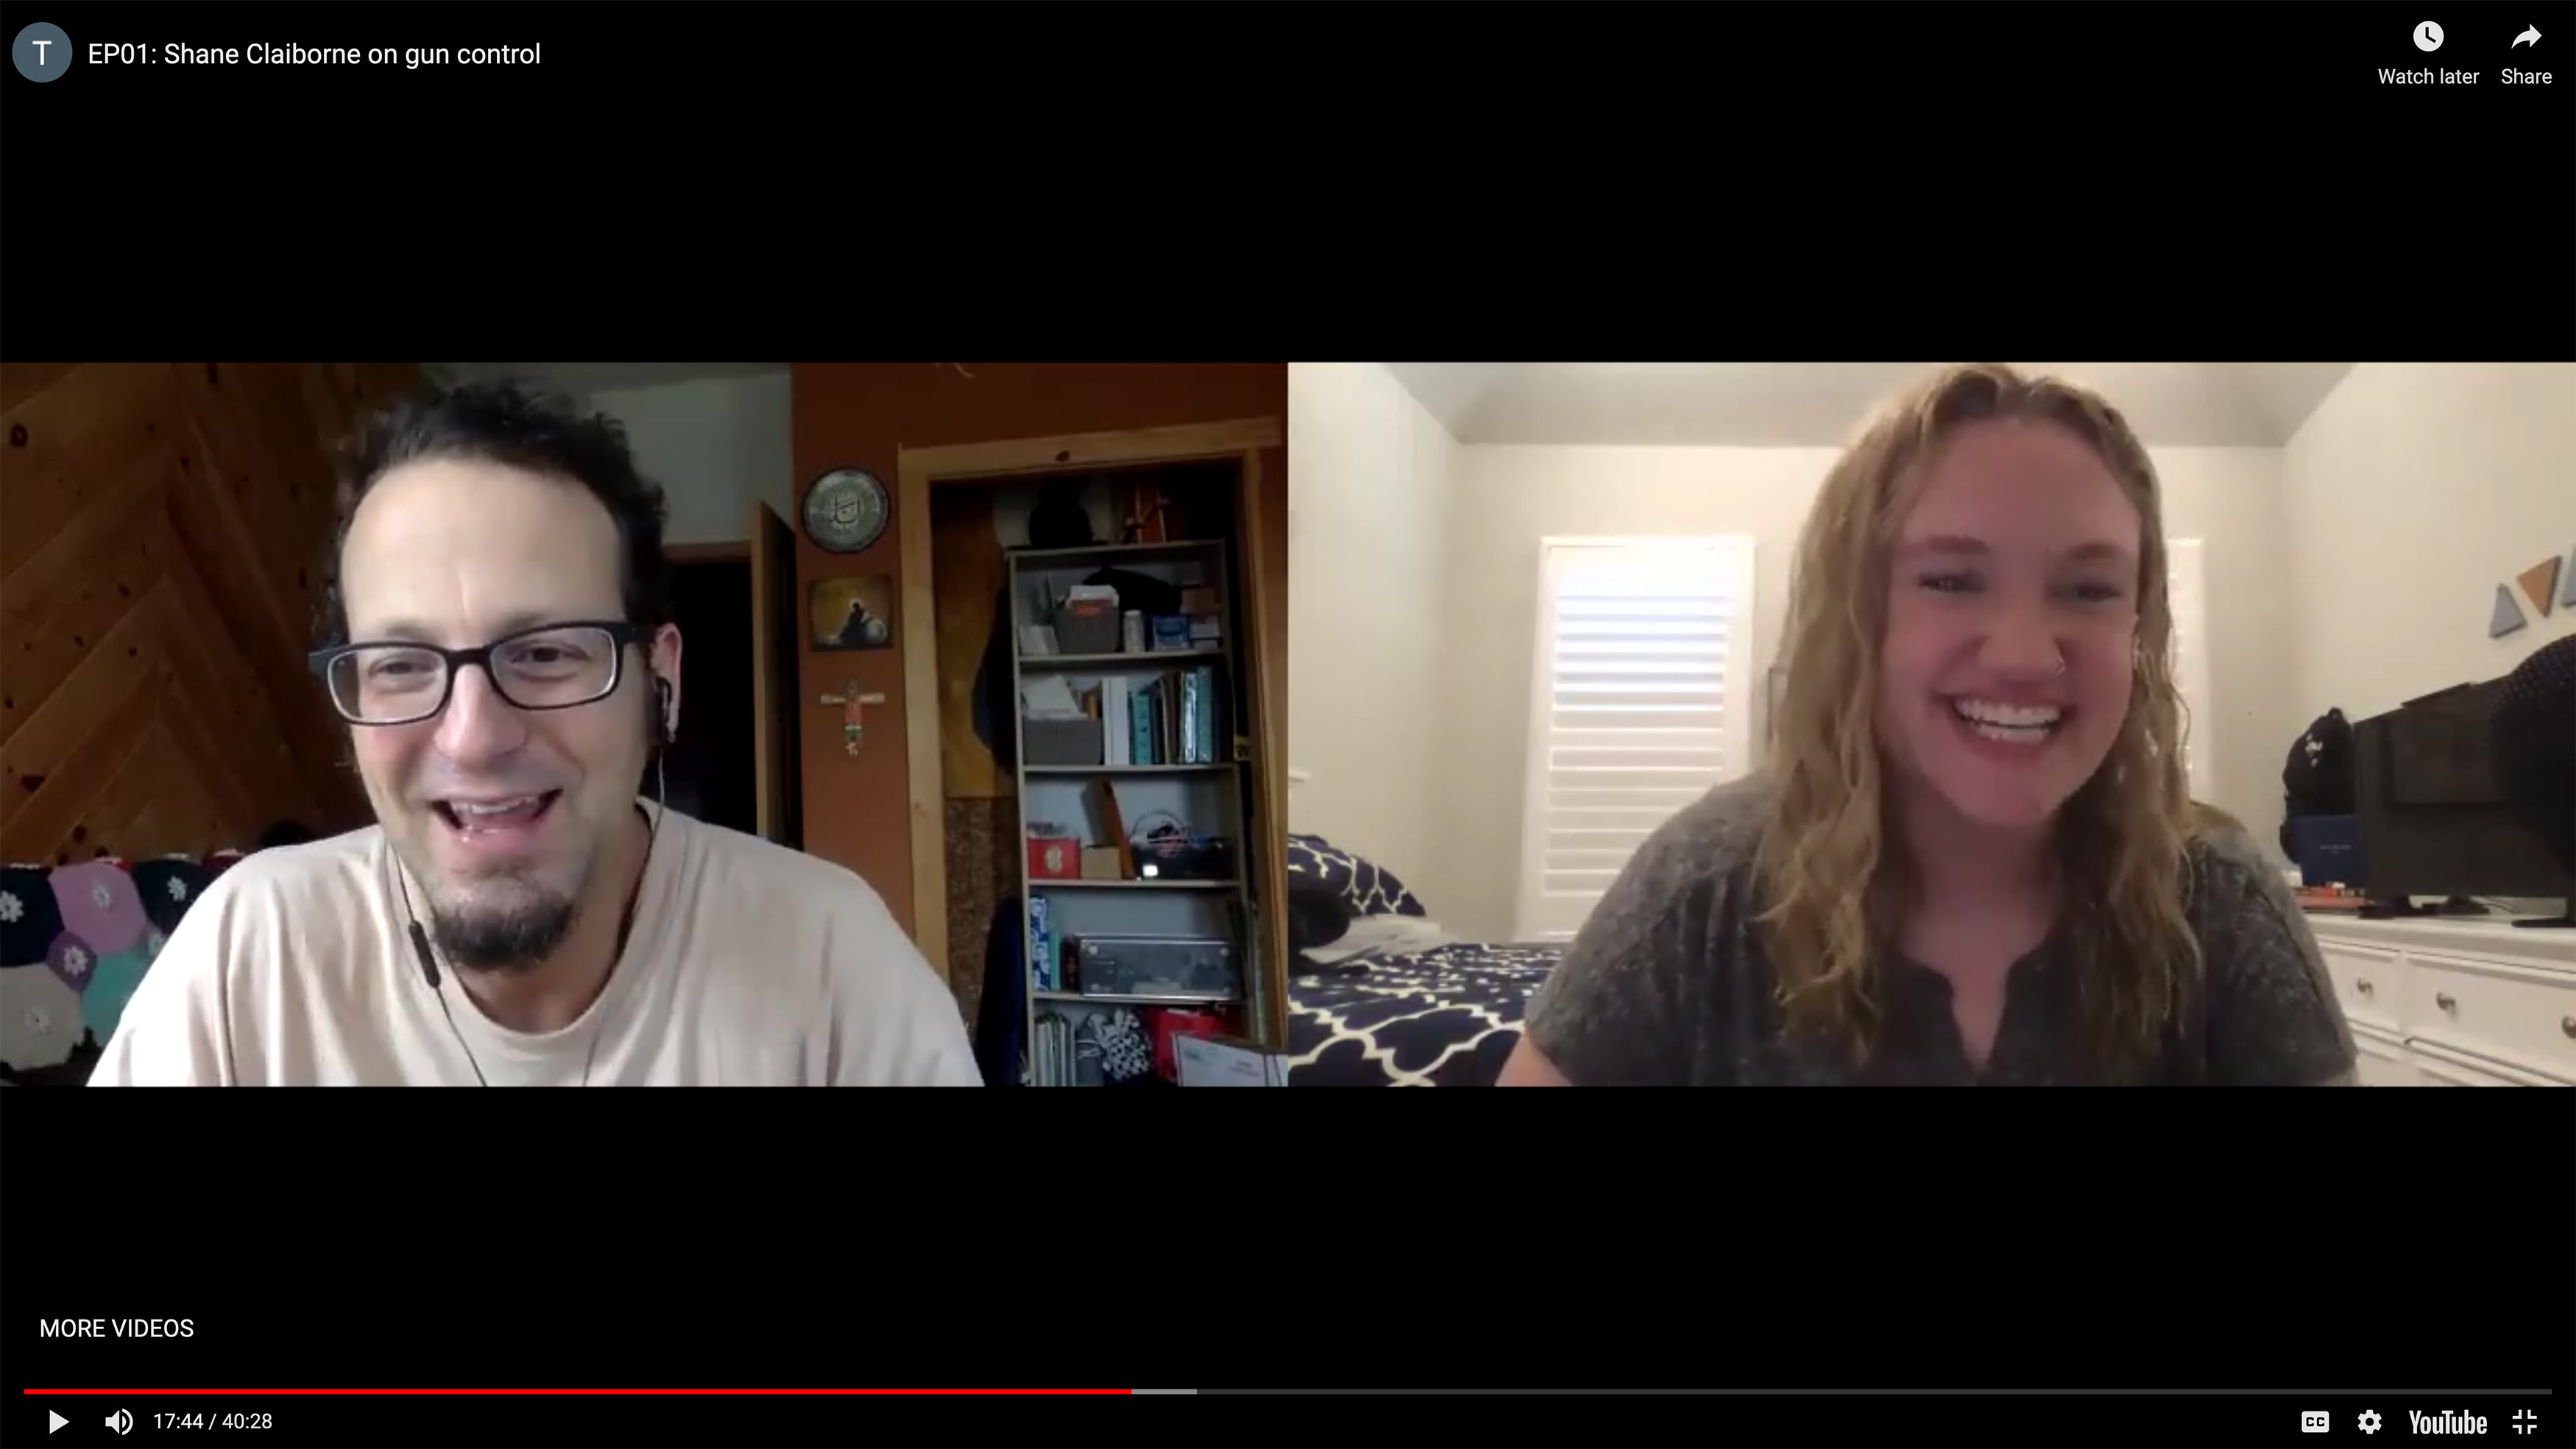 Sydney Gray and her podcast guest Shane Claiborne